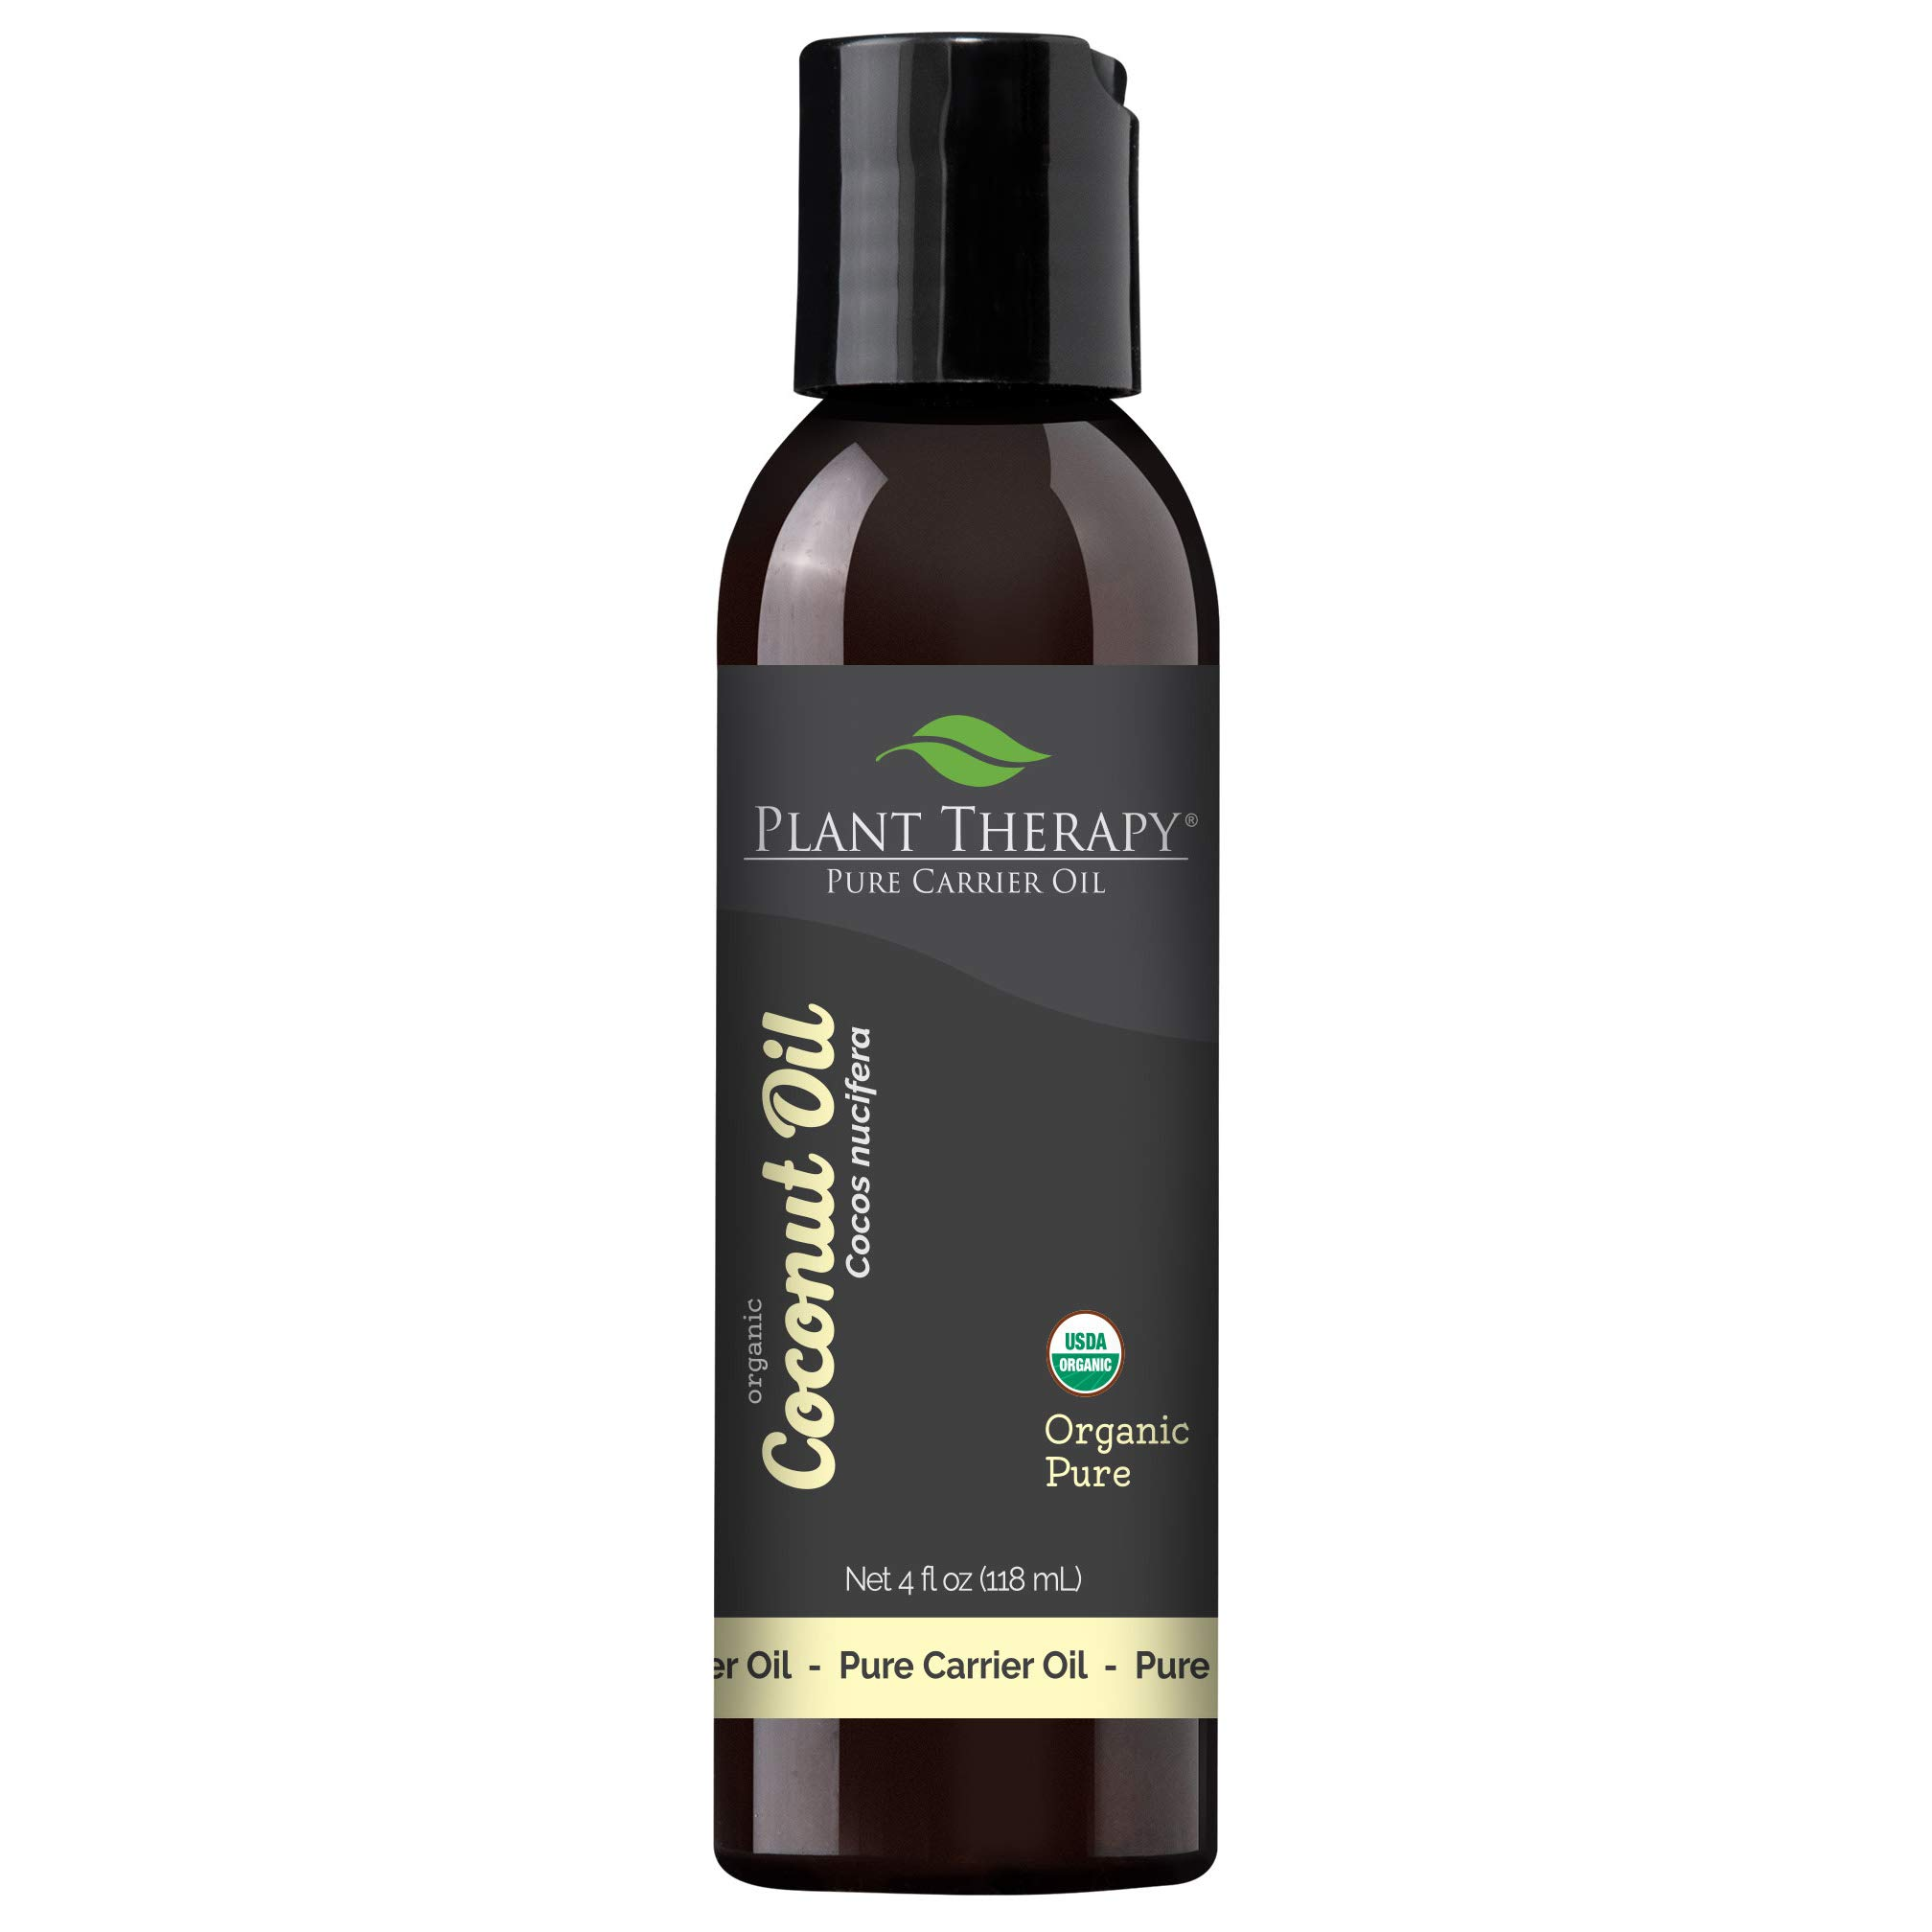 Plant Therapy Essential Oils Organic Fractionated Coconut Oil for Skin, Hair, Body 100% Pure, USDA Certified Organic, Natural Moisturizer, Massage & Aromatherapy Liquid Carrier Oil 4 oz